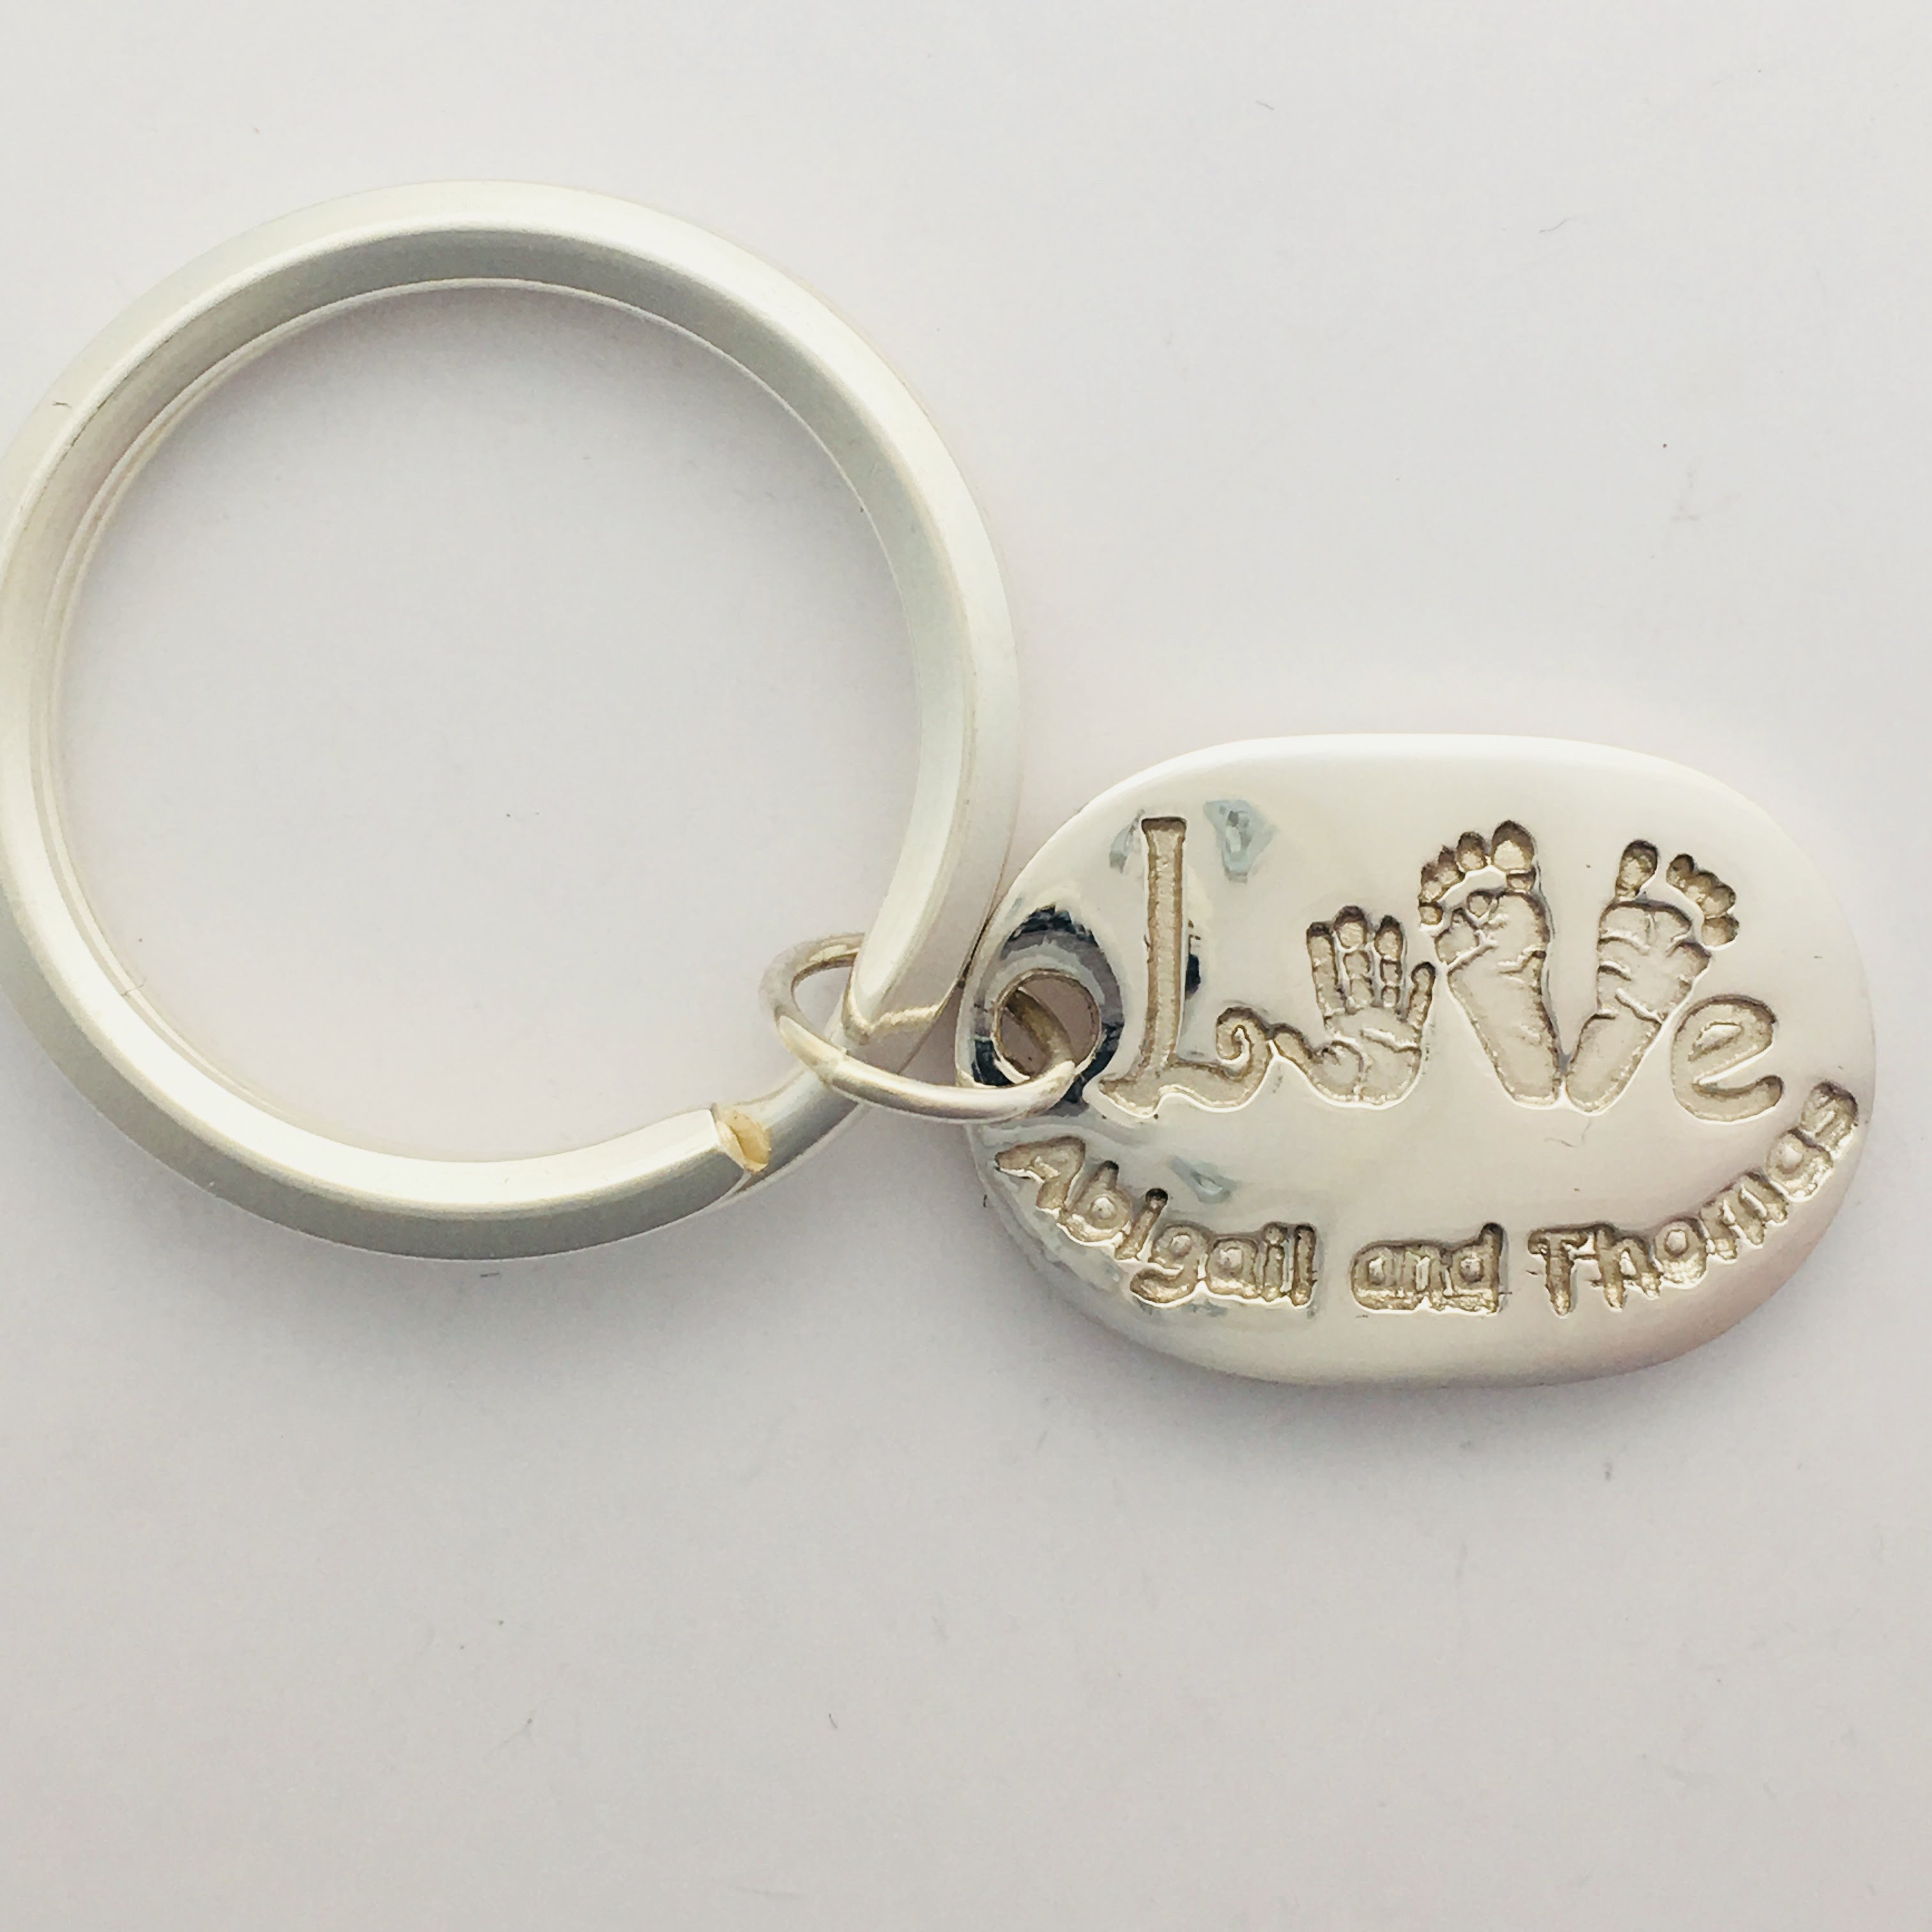 Keyring with Various Prints